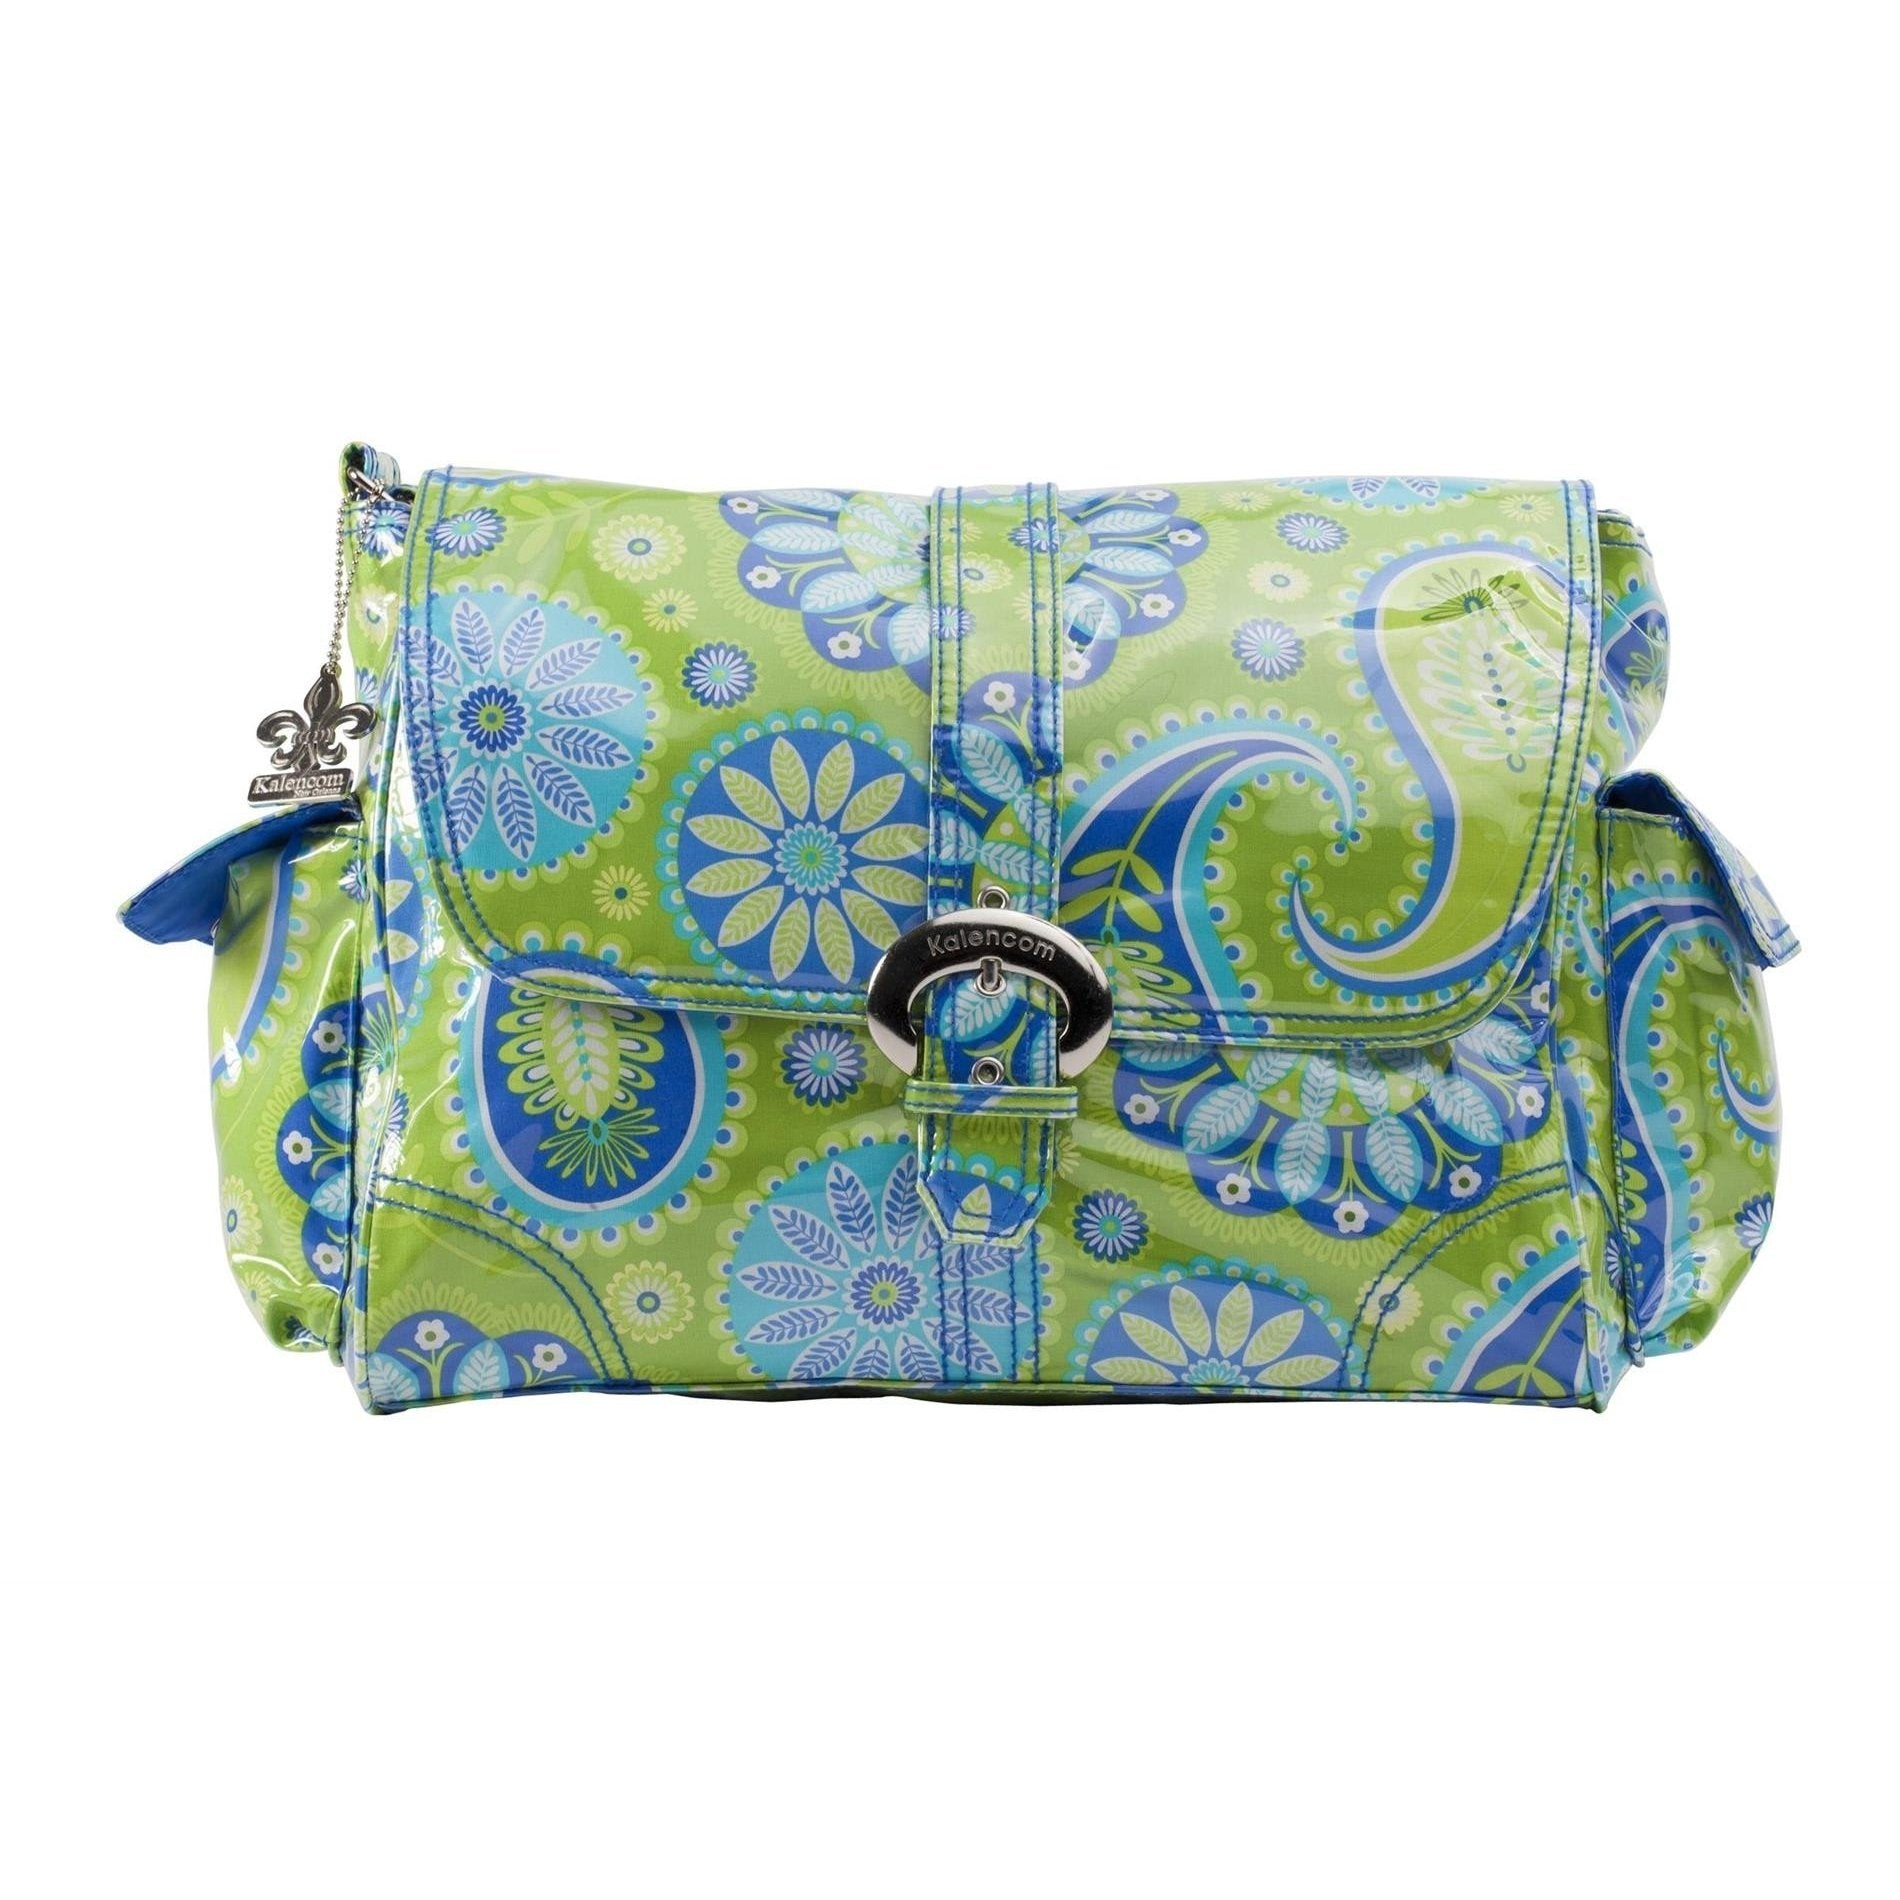 Gypsy Paisley Green Laminated Buckle Diaper Bag | Style 2960 - Kalencom-Diaper Bags-Jack and Jill Boutique